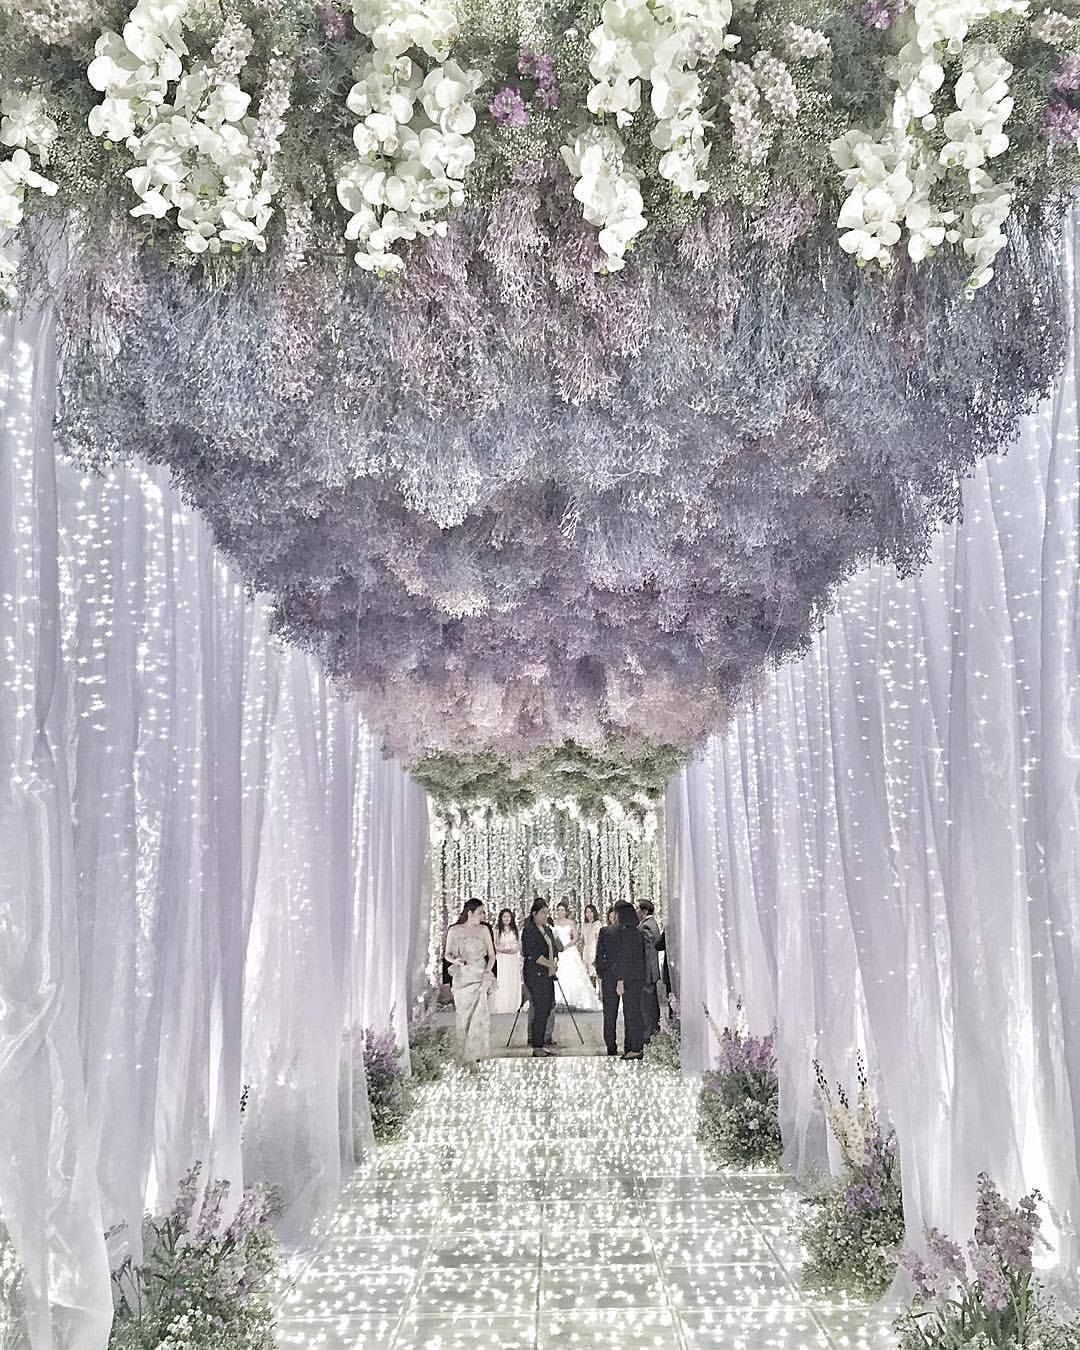 Purple Wedding Inspiration From This Incredible Tunnel With Fairy Lights And A Ceiling Suspended White